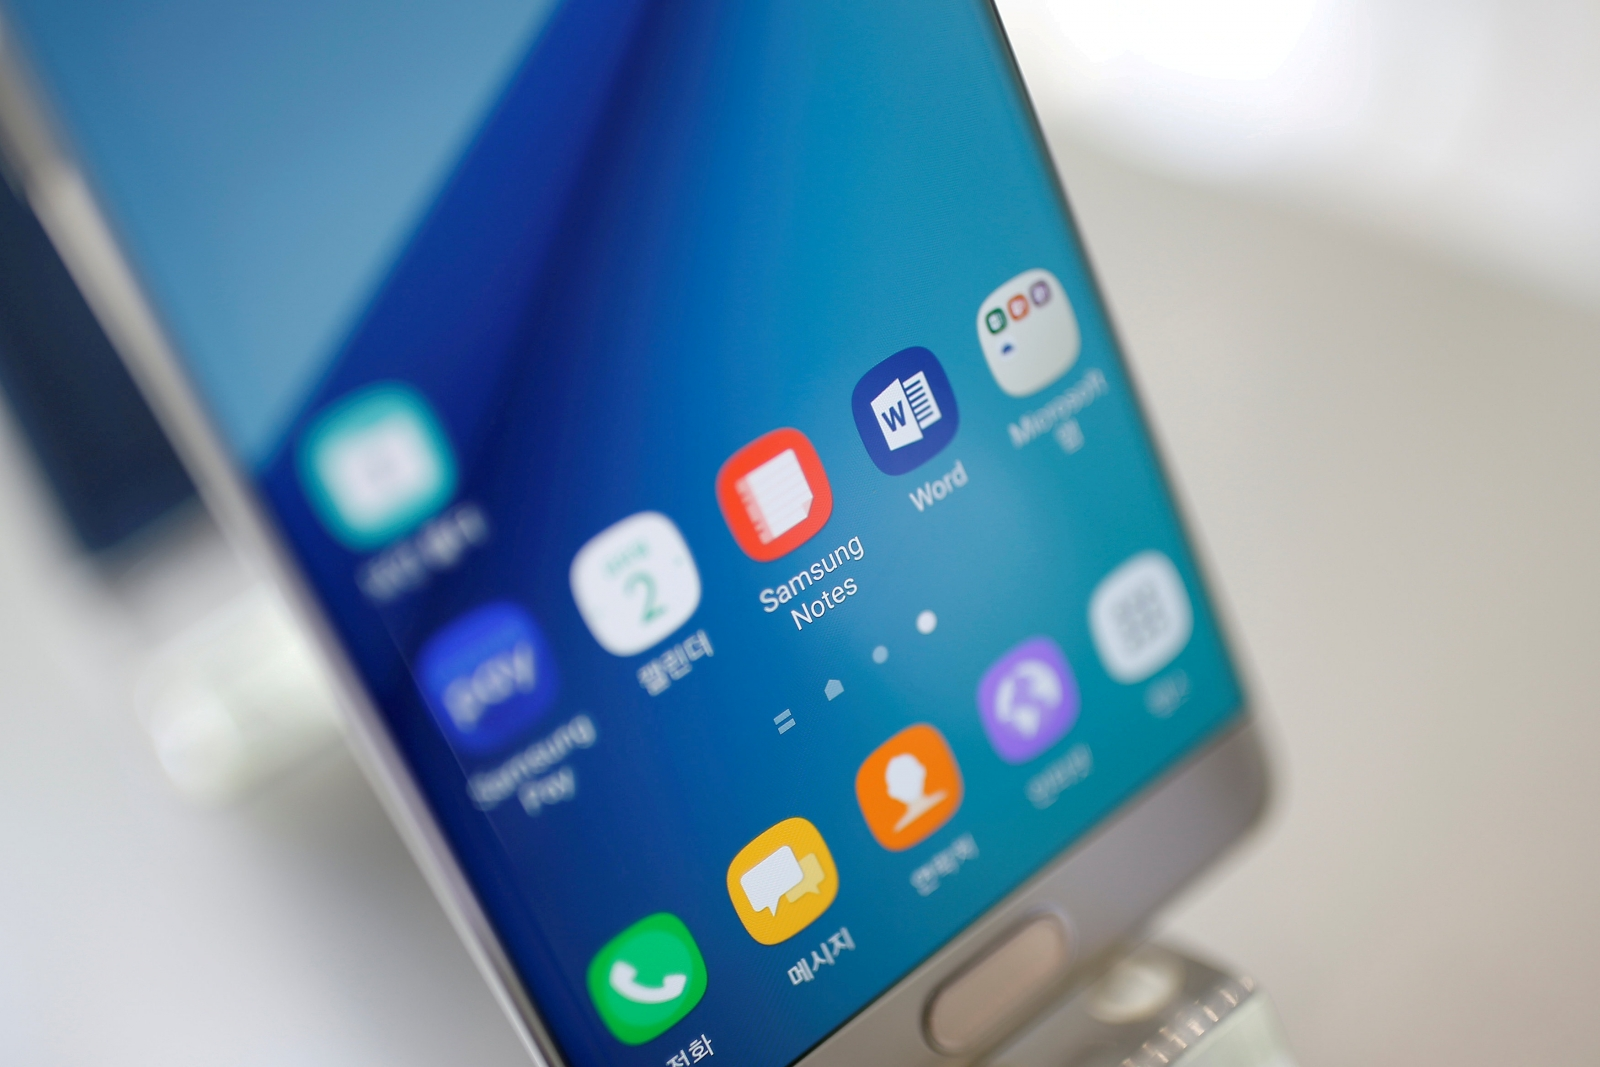 Galaxy Note 8 codename, model number leaked